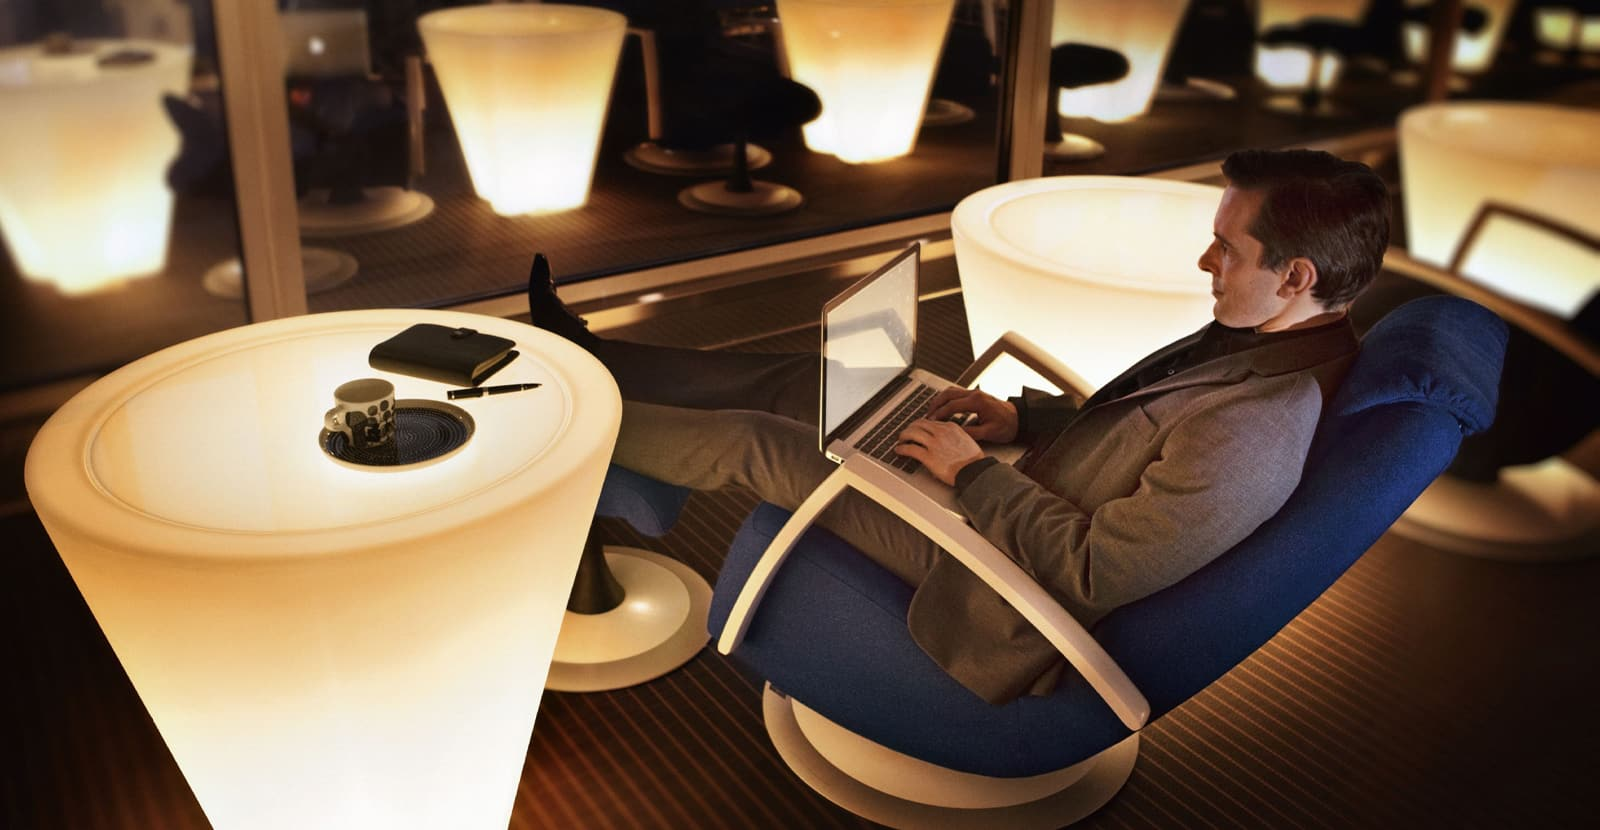 helsinki-airport-customer-experience-vision-by-engine